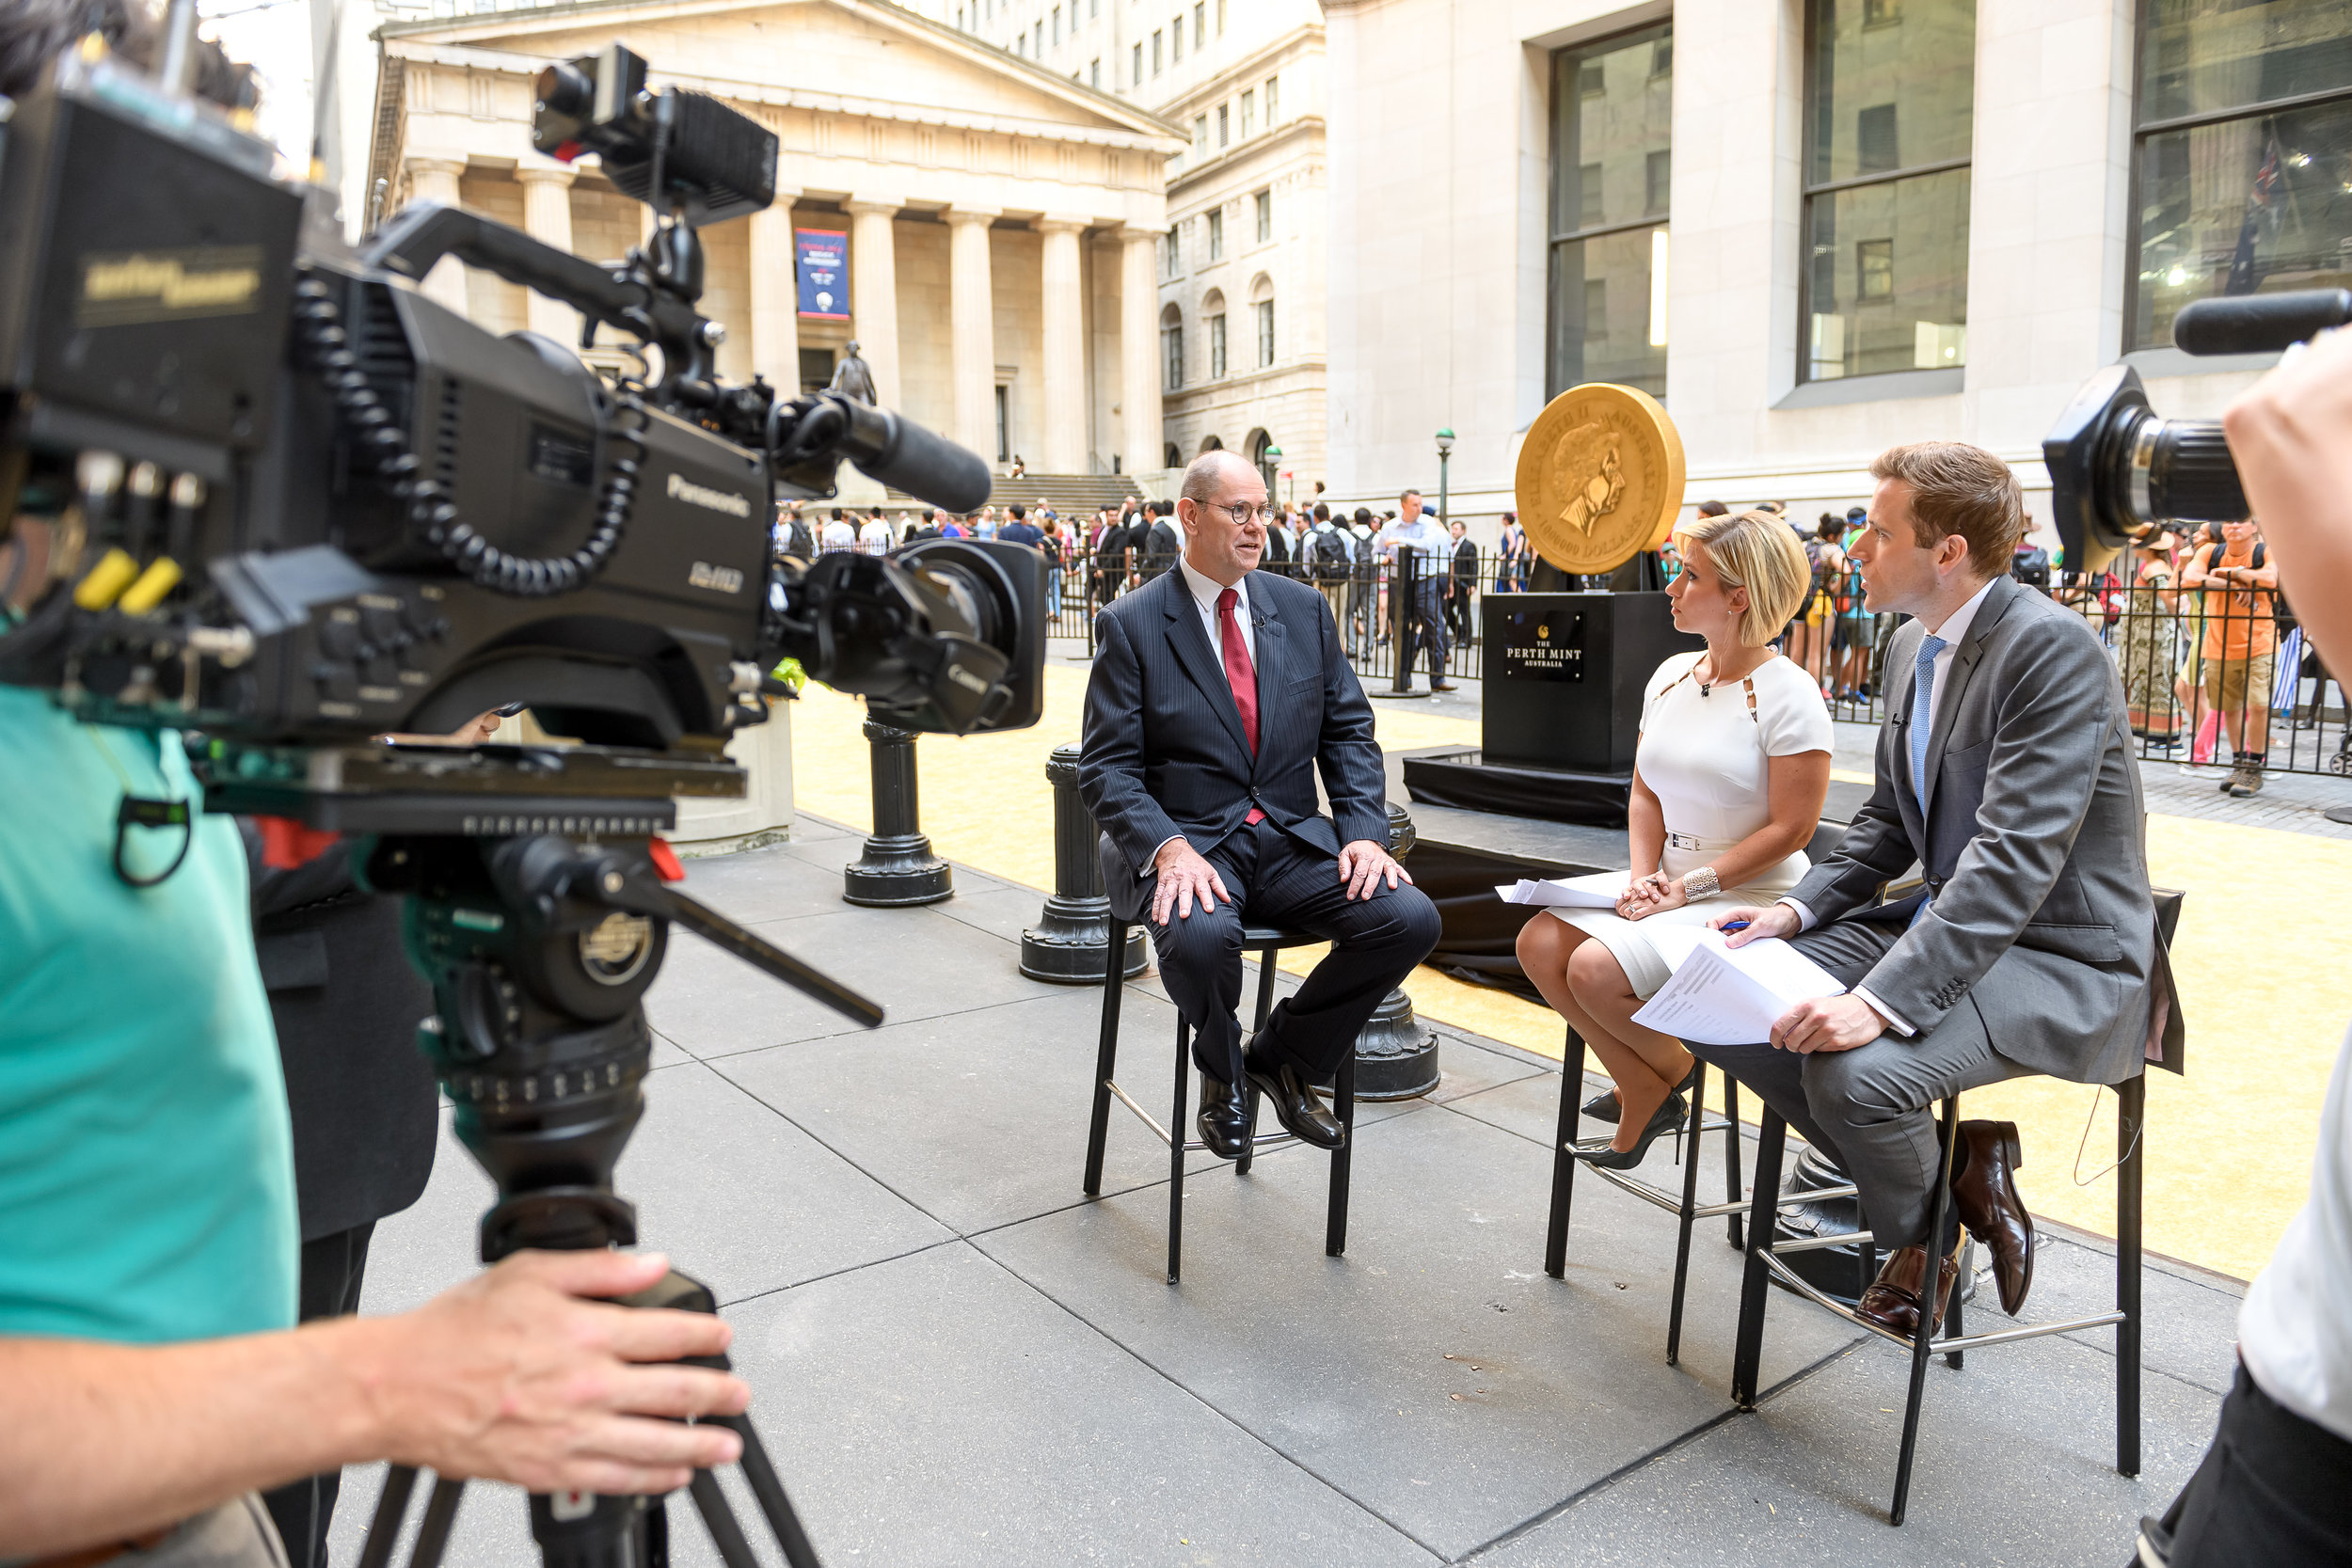 The Perth Mint CEO interviewed by CNBC Closing Bell to discuss the Perth Mint Physical Gold ETF.